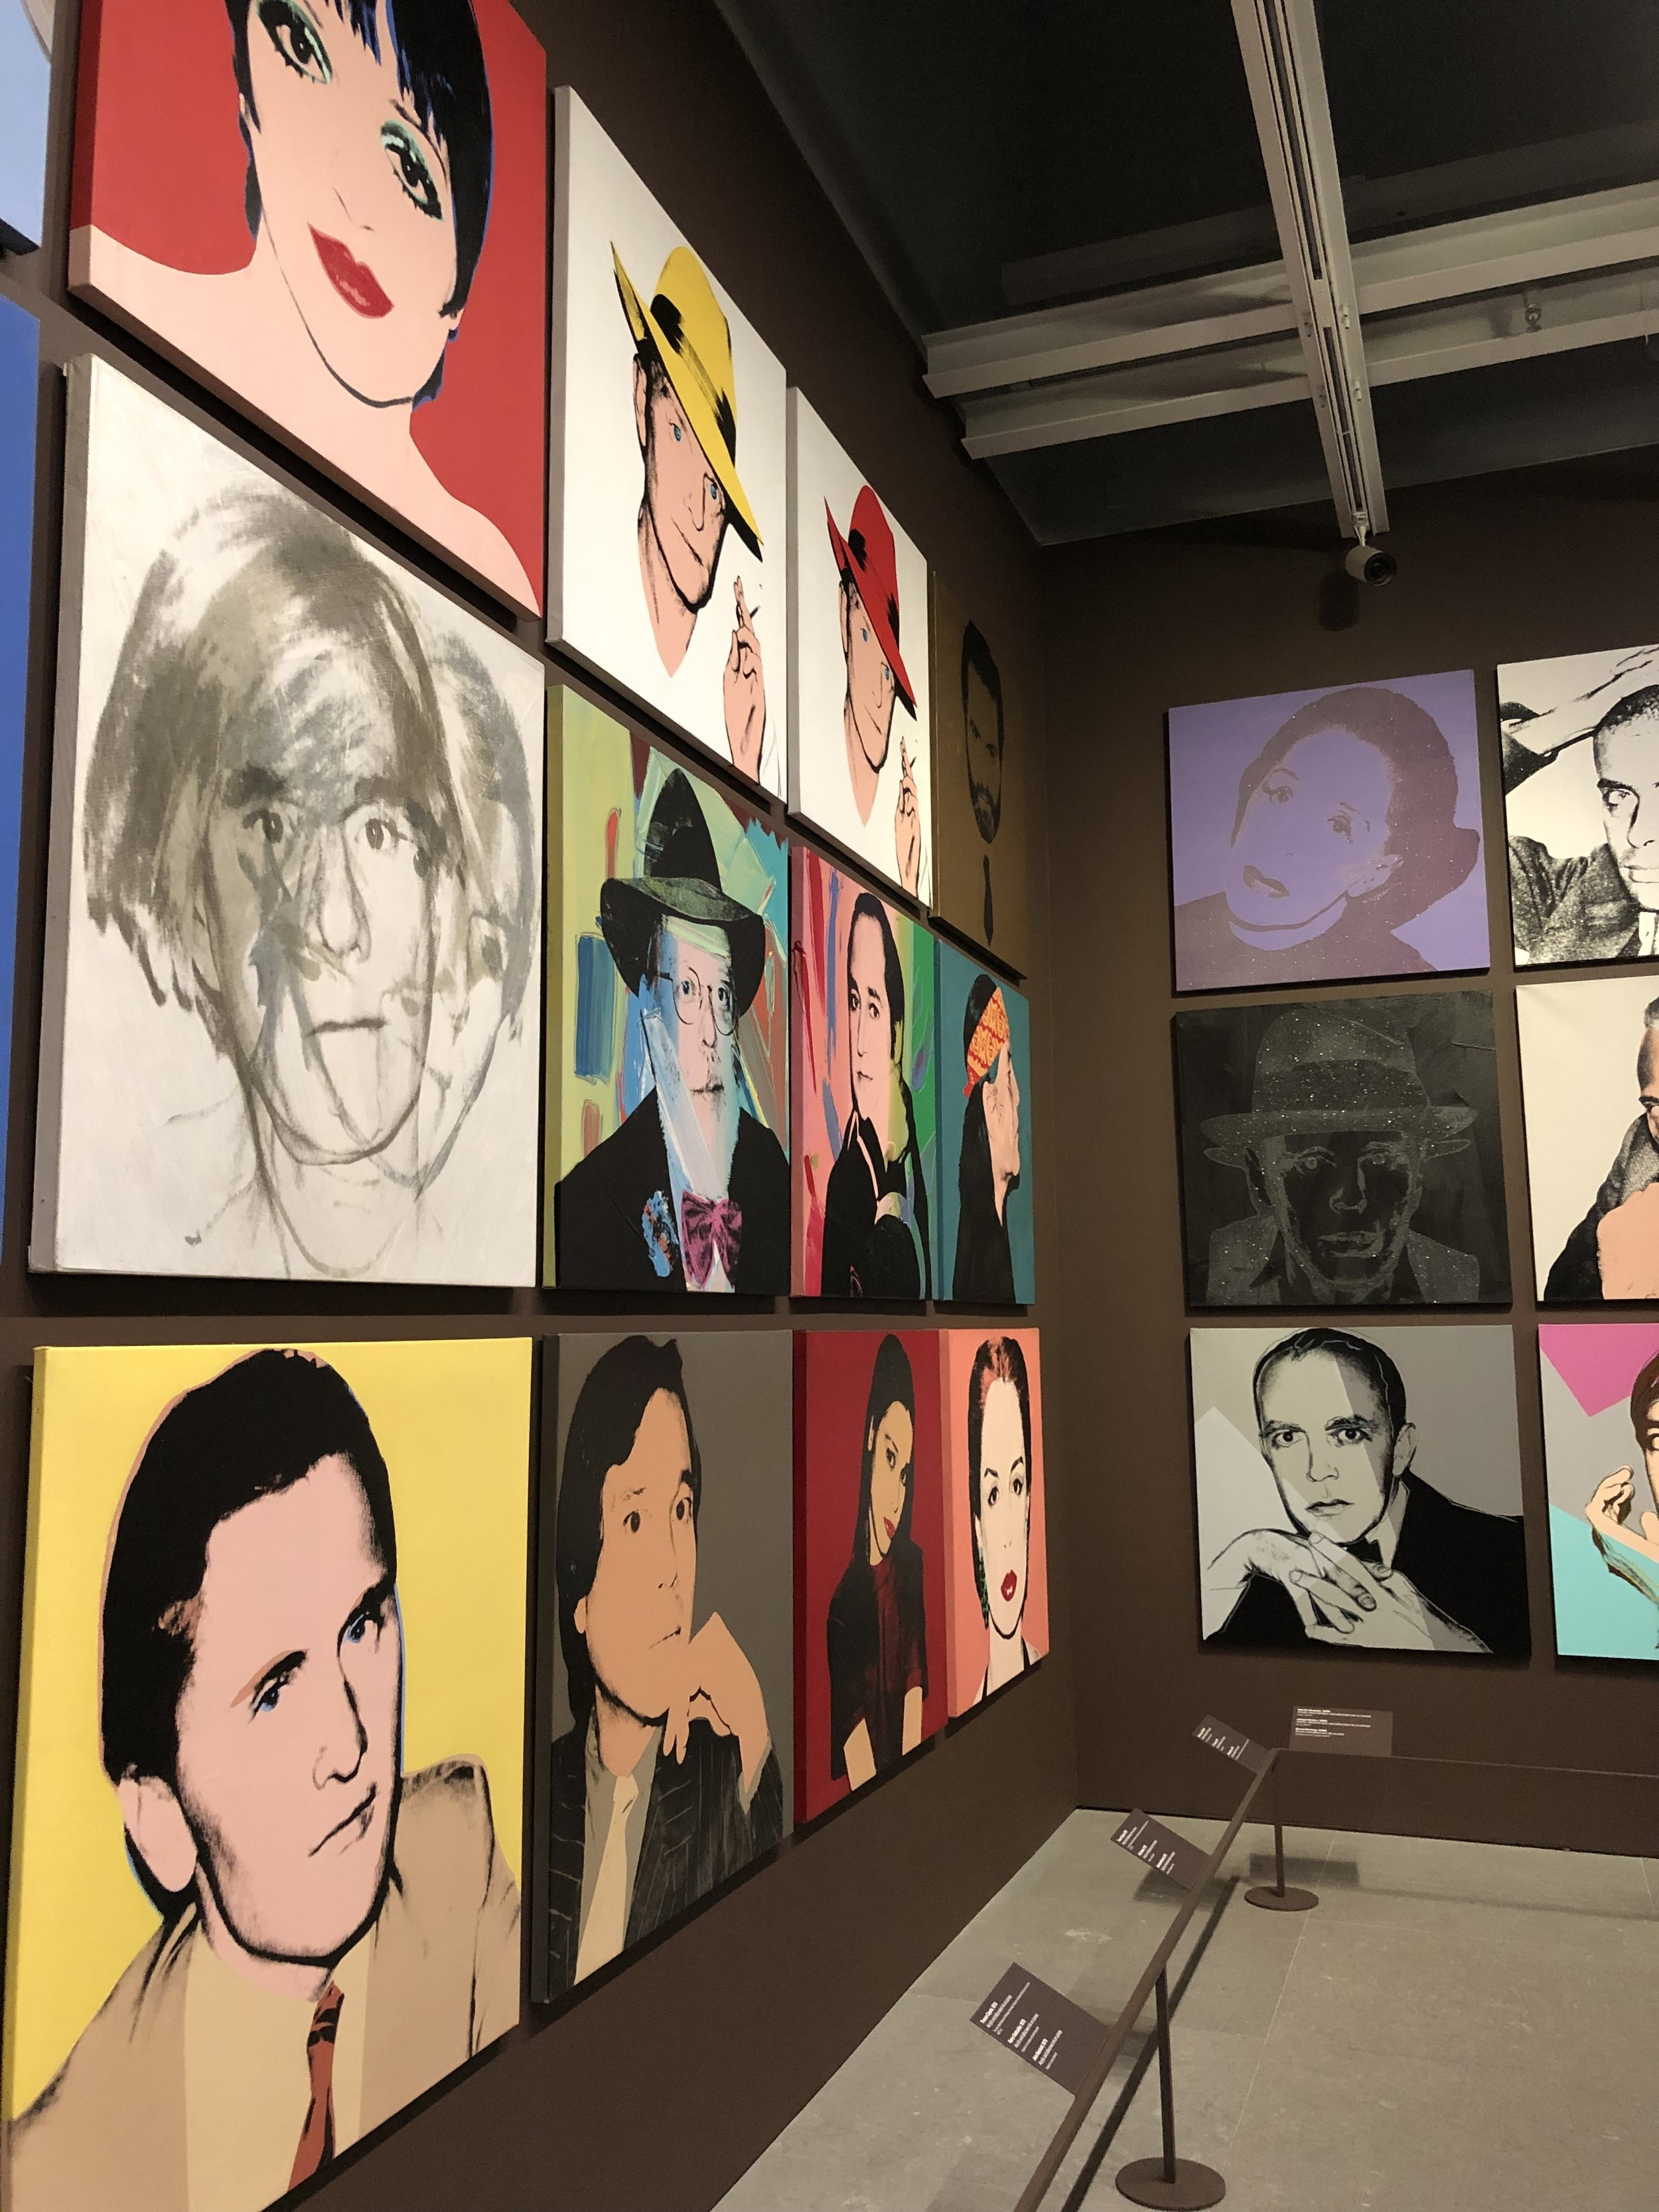 Visiting The Whitney for the Andy Warhol exhibit